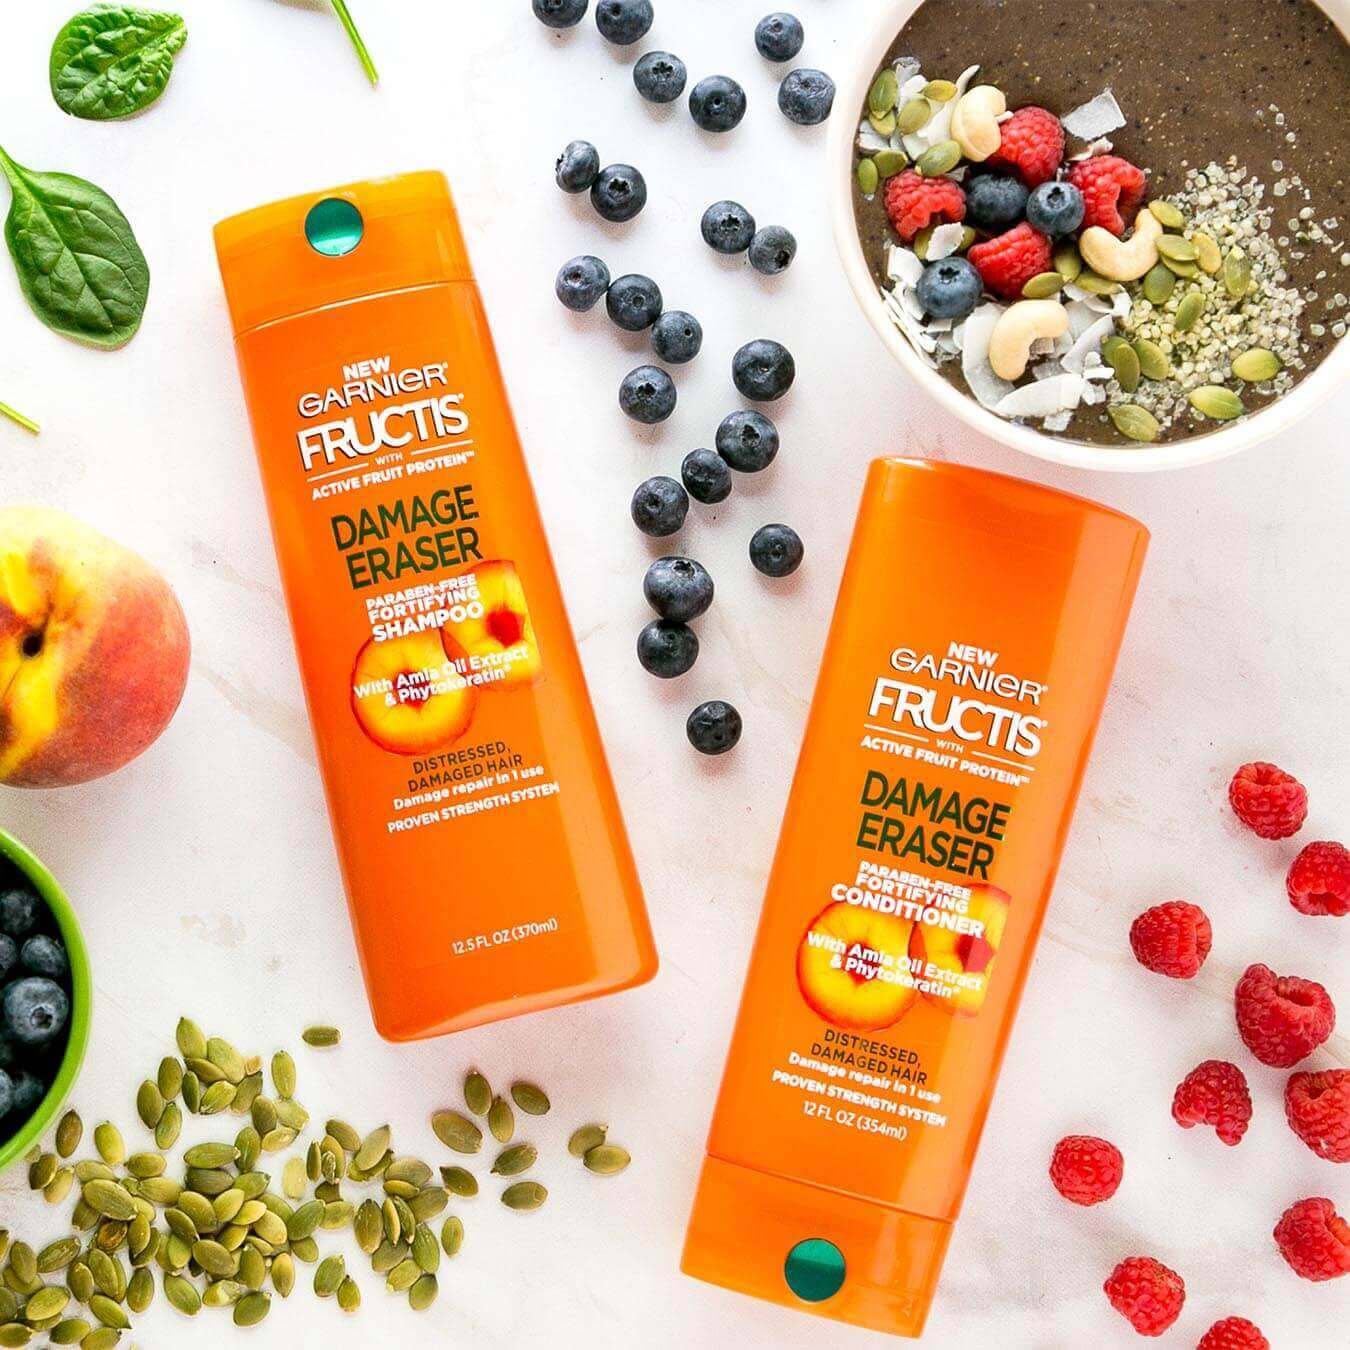 Garnier Fructis Damage Eraser Shampoo and Damage Eraser Conditioner on white marble next to raspberries, blueberries, basil leaves, pumpkin seeds, and soil with various toppings.